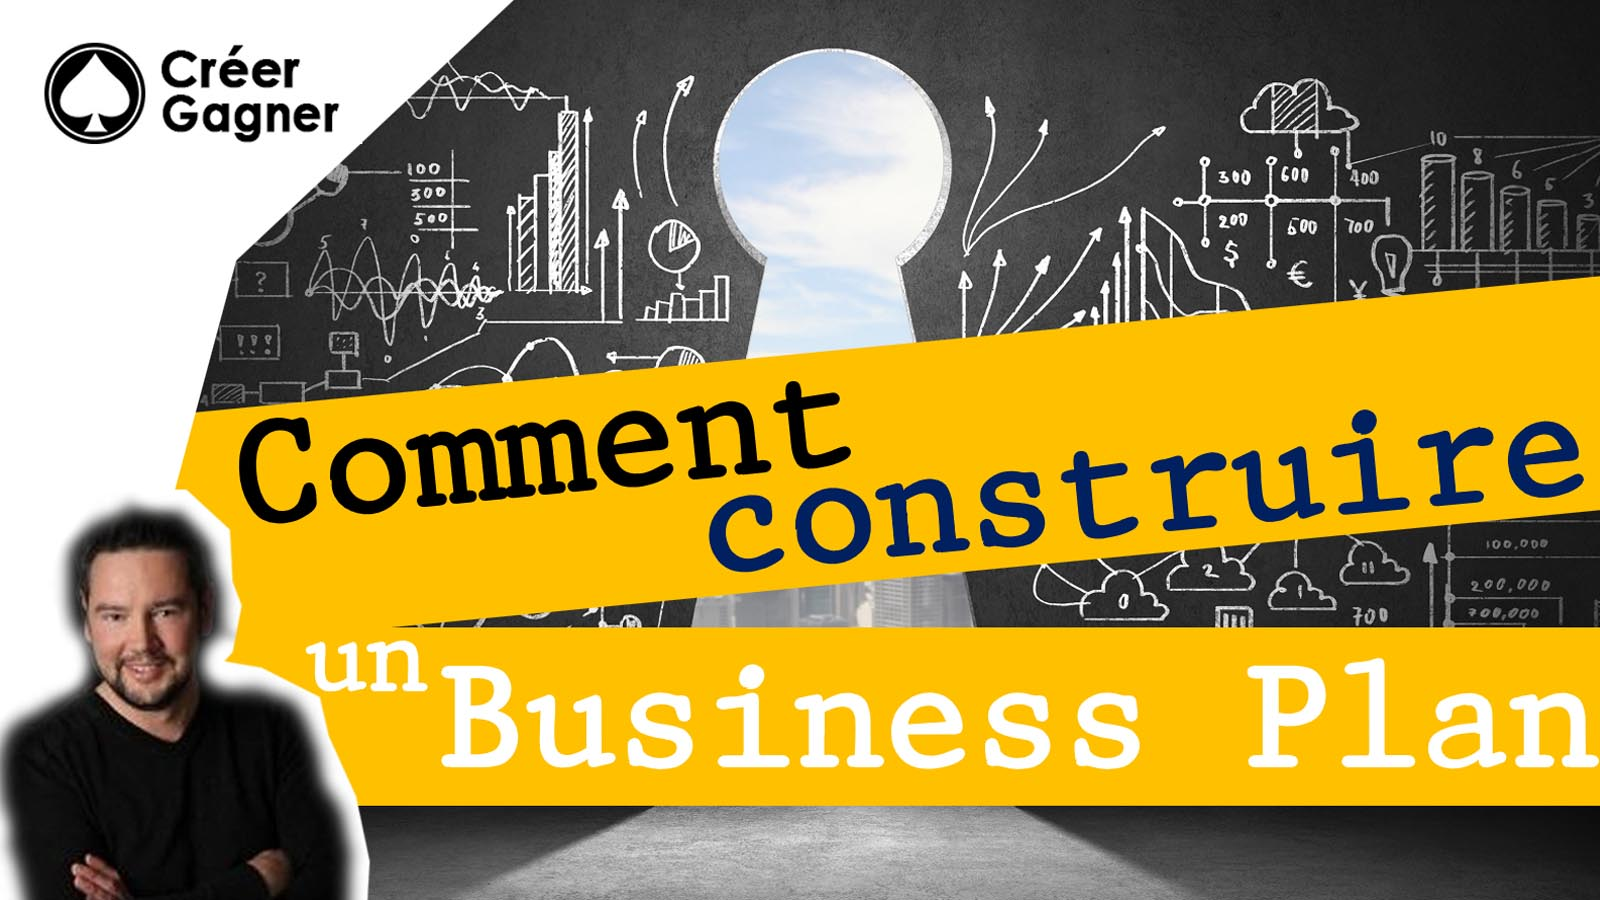 Construire un business plan creer for Ouvrir un commerce idee